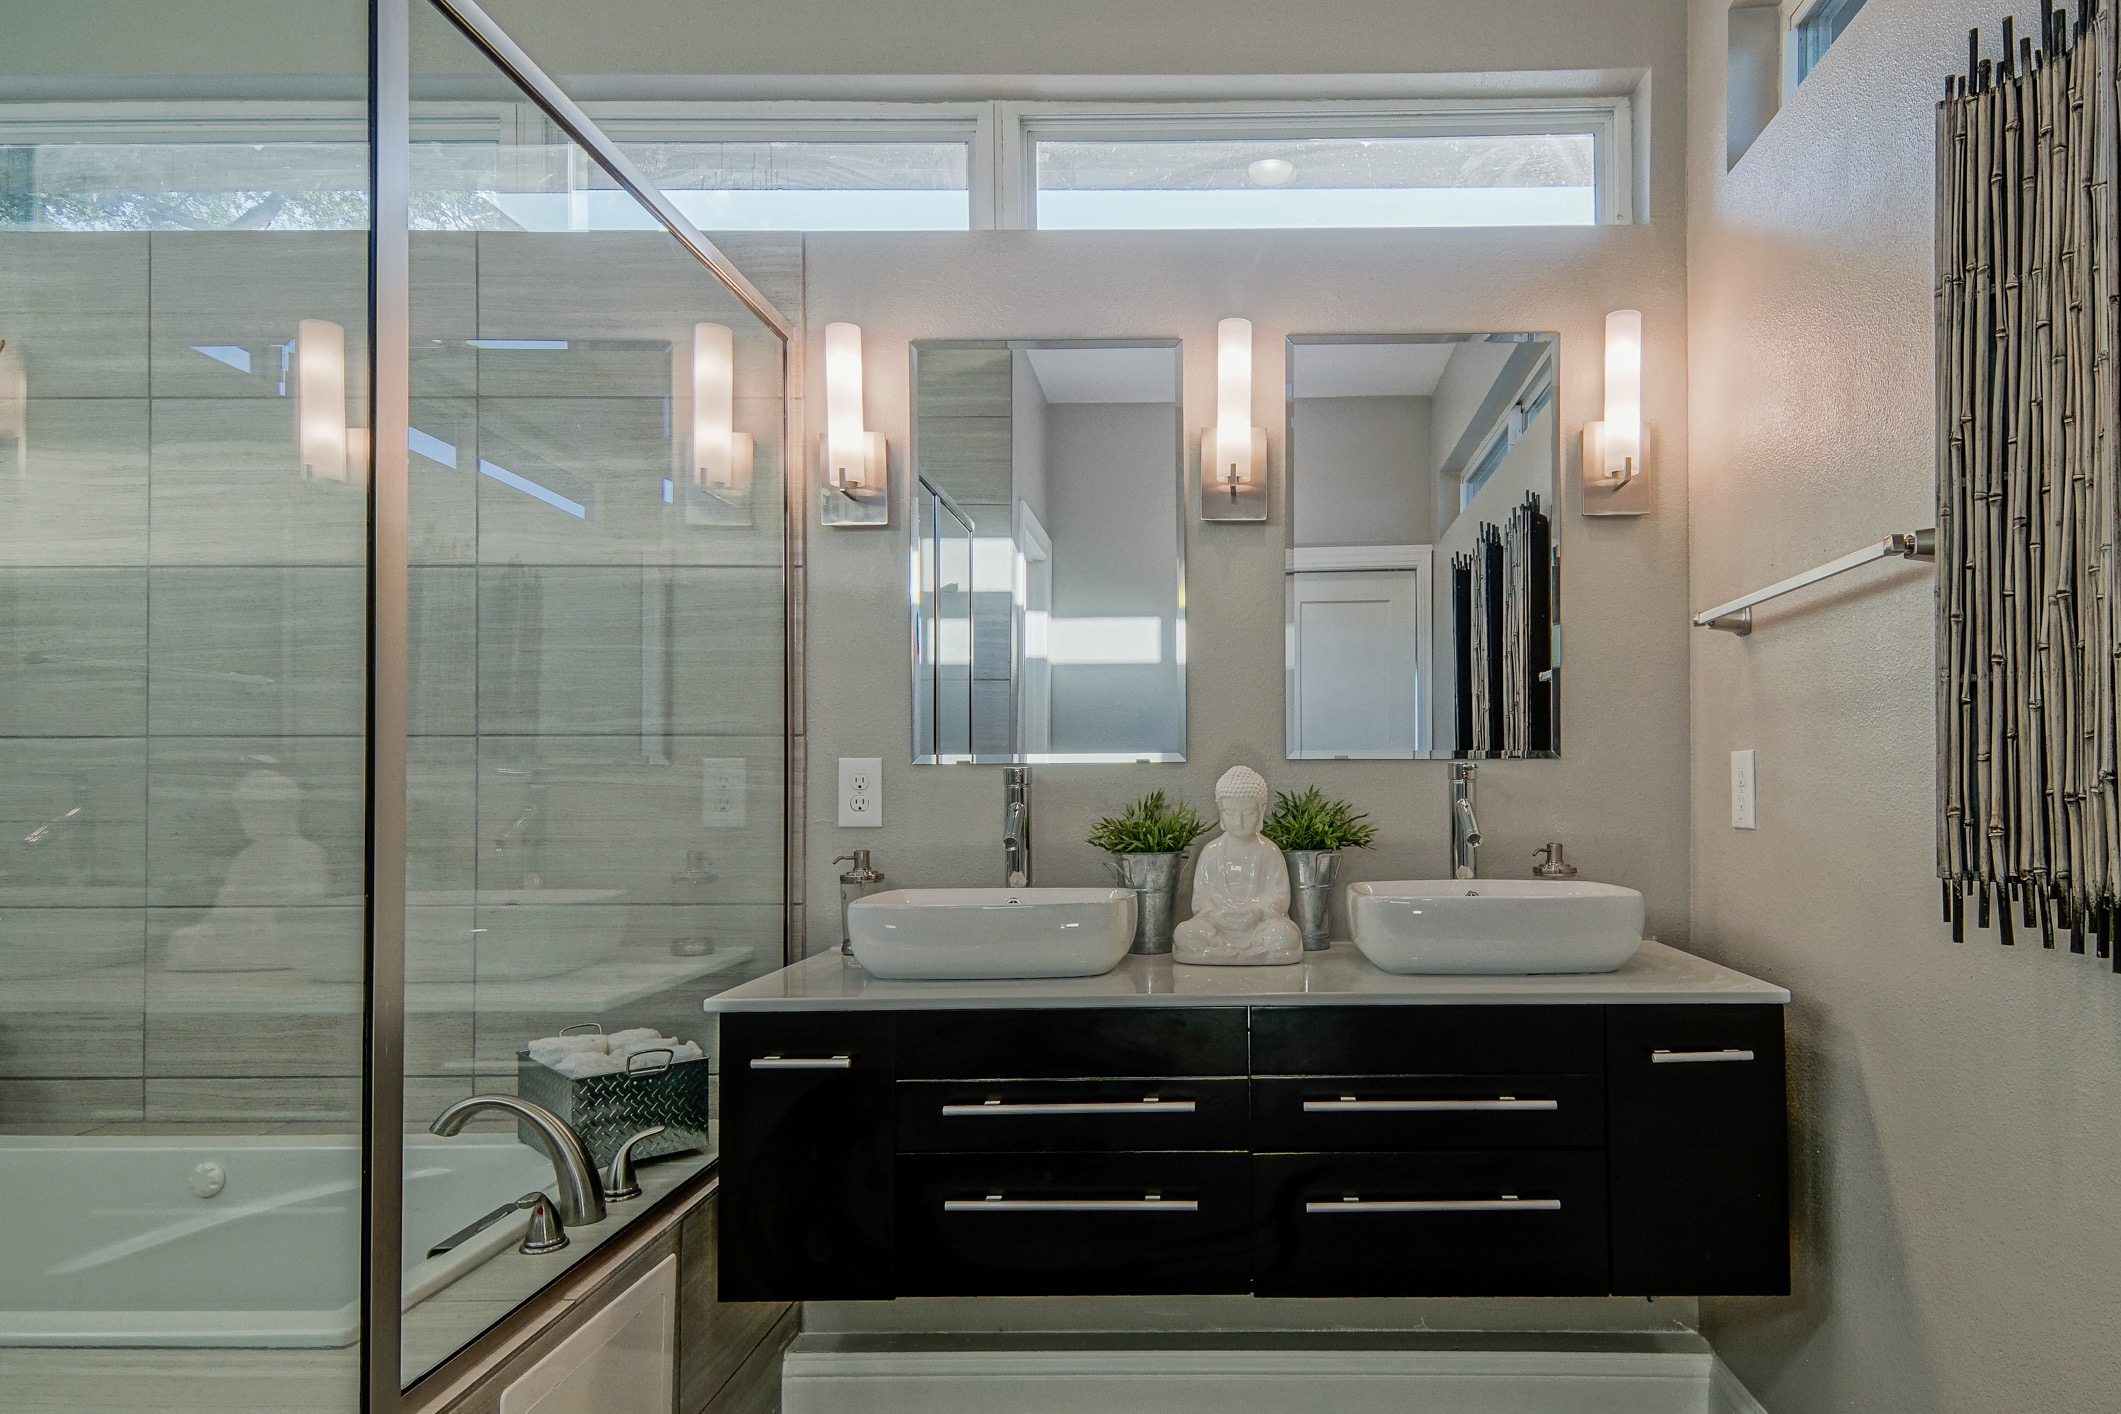 Contemporary Master Bathroom With Light Walls (View 14 of 19)